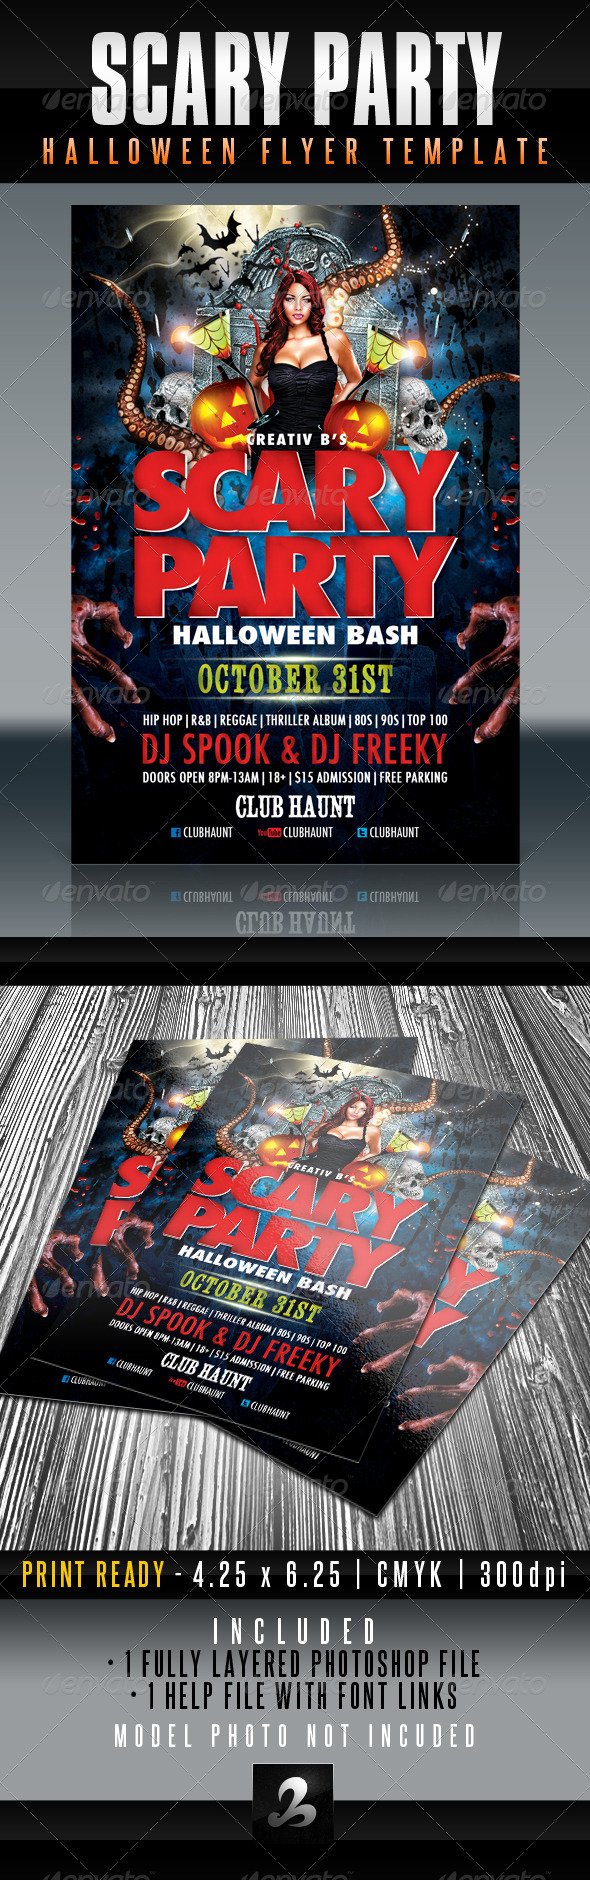 GraphicRiver Scary Party Halloween Flyer Template 5493639